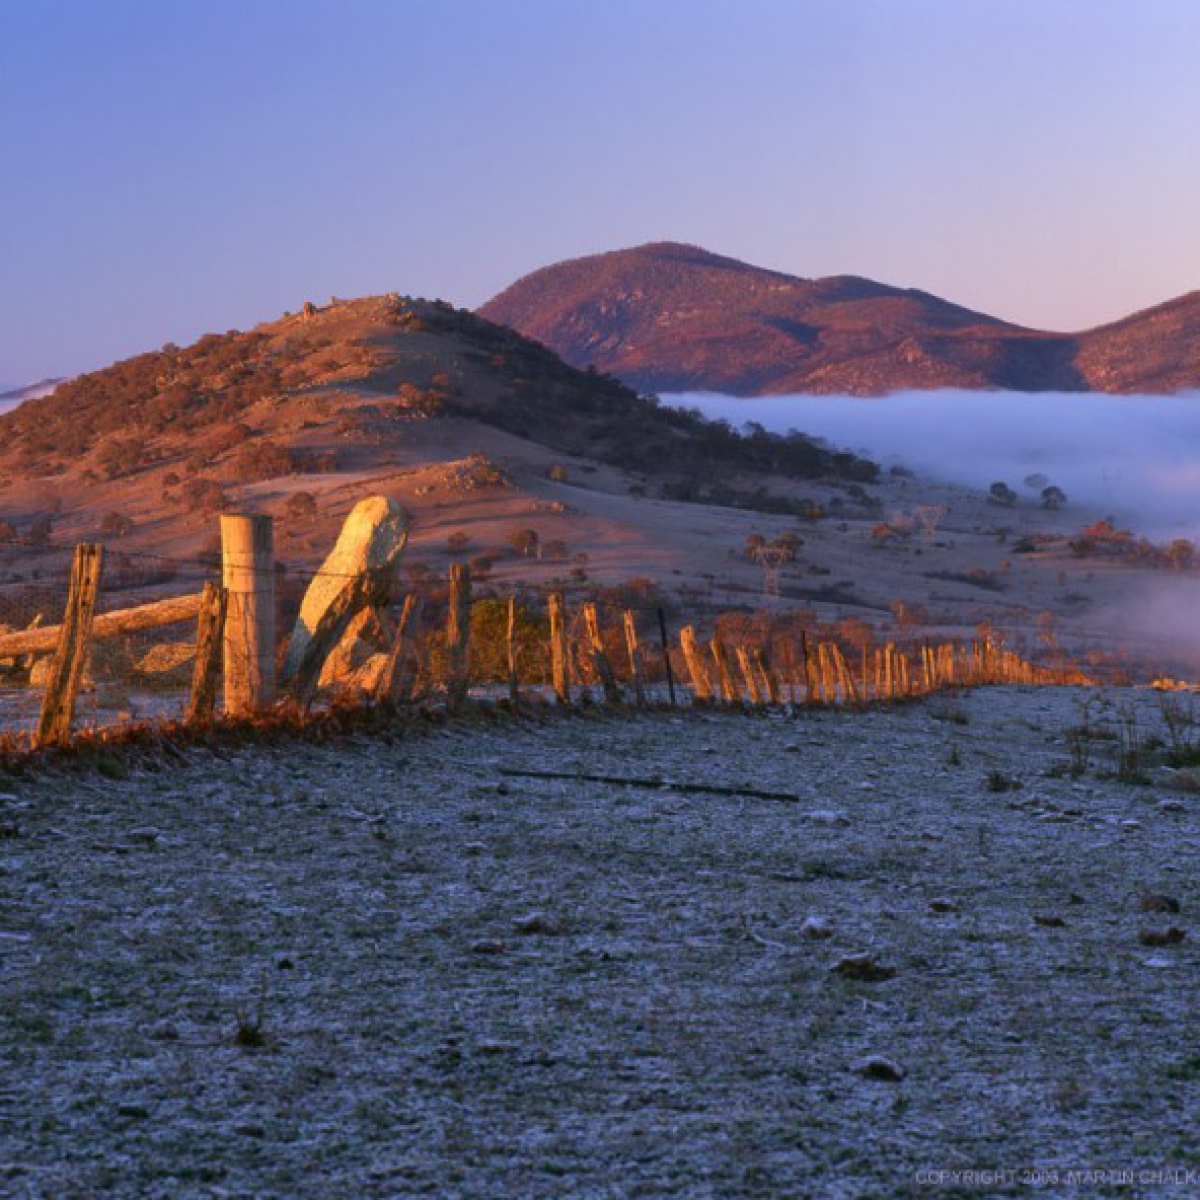 Frost and fog above the Murrumbidgee River